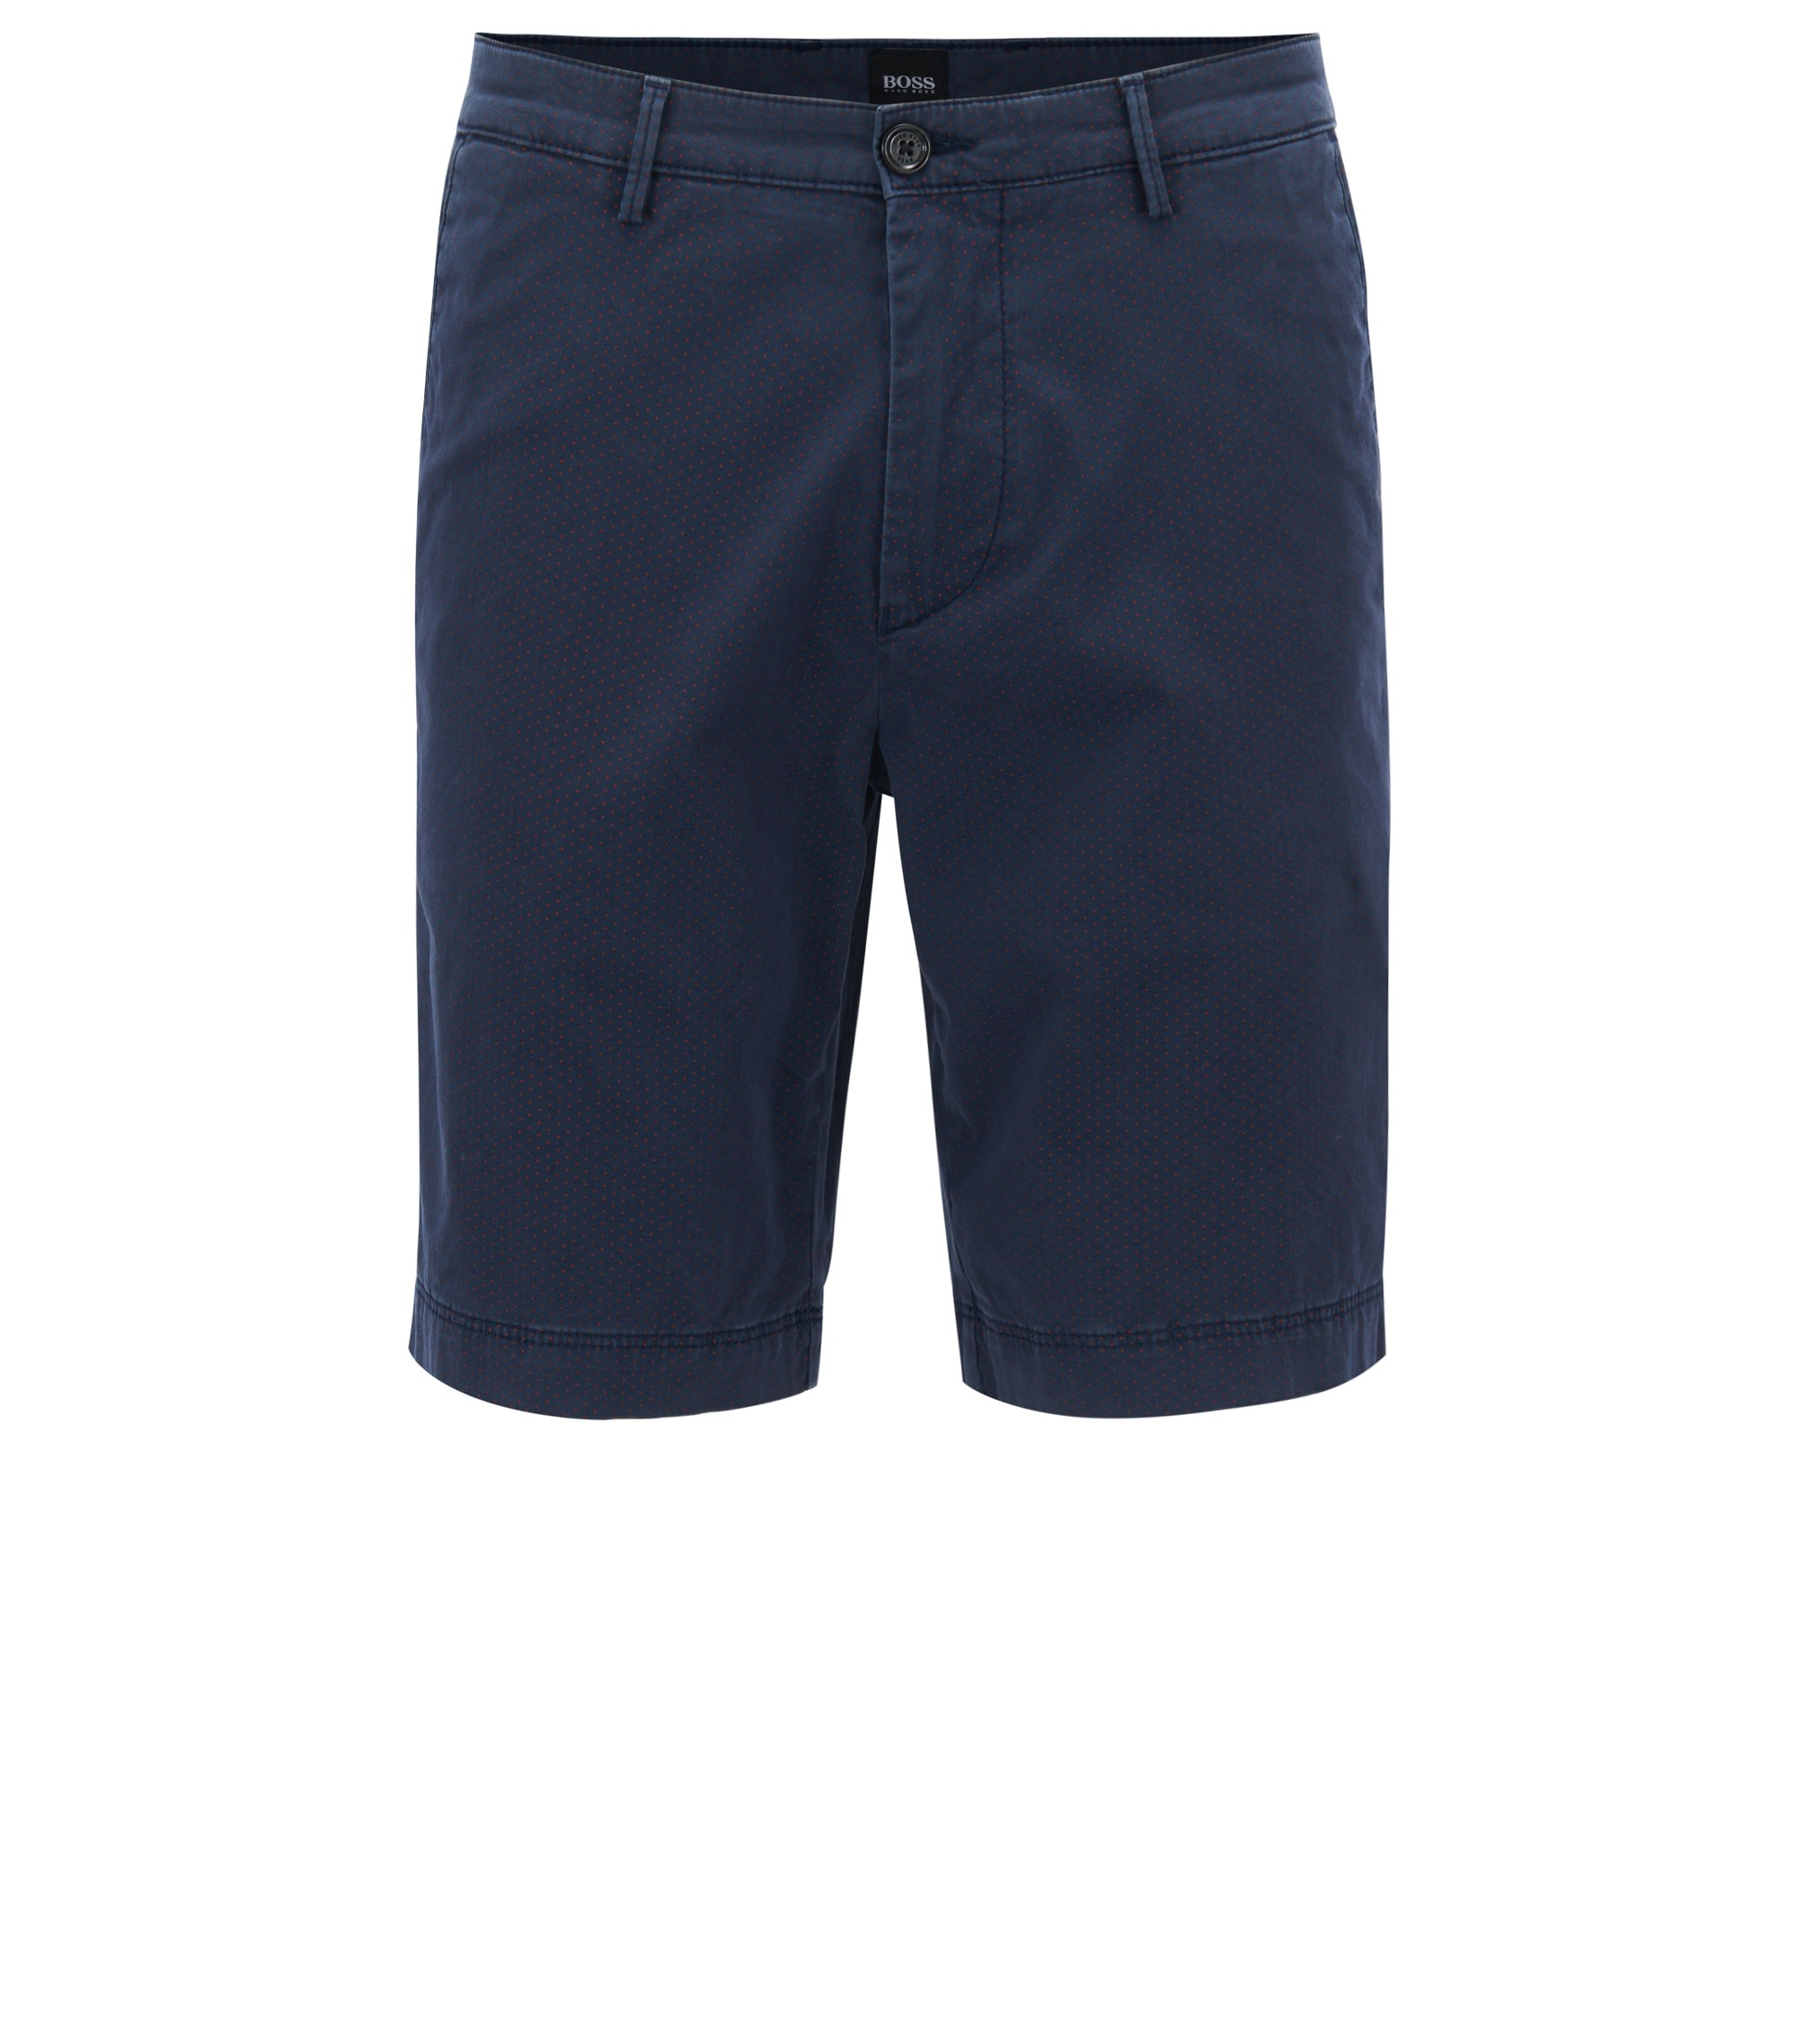 Pindot Stretch Cotton Short, Regular Fit | Crigan Short W, Dark Blue